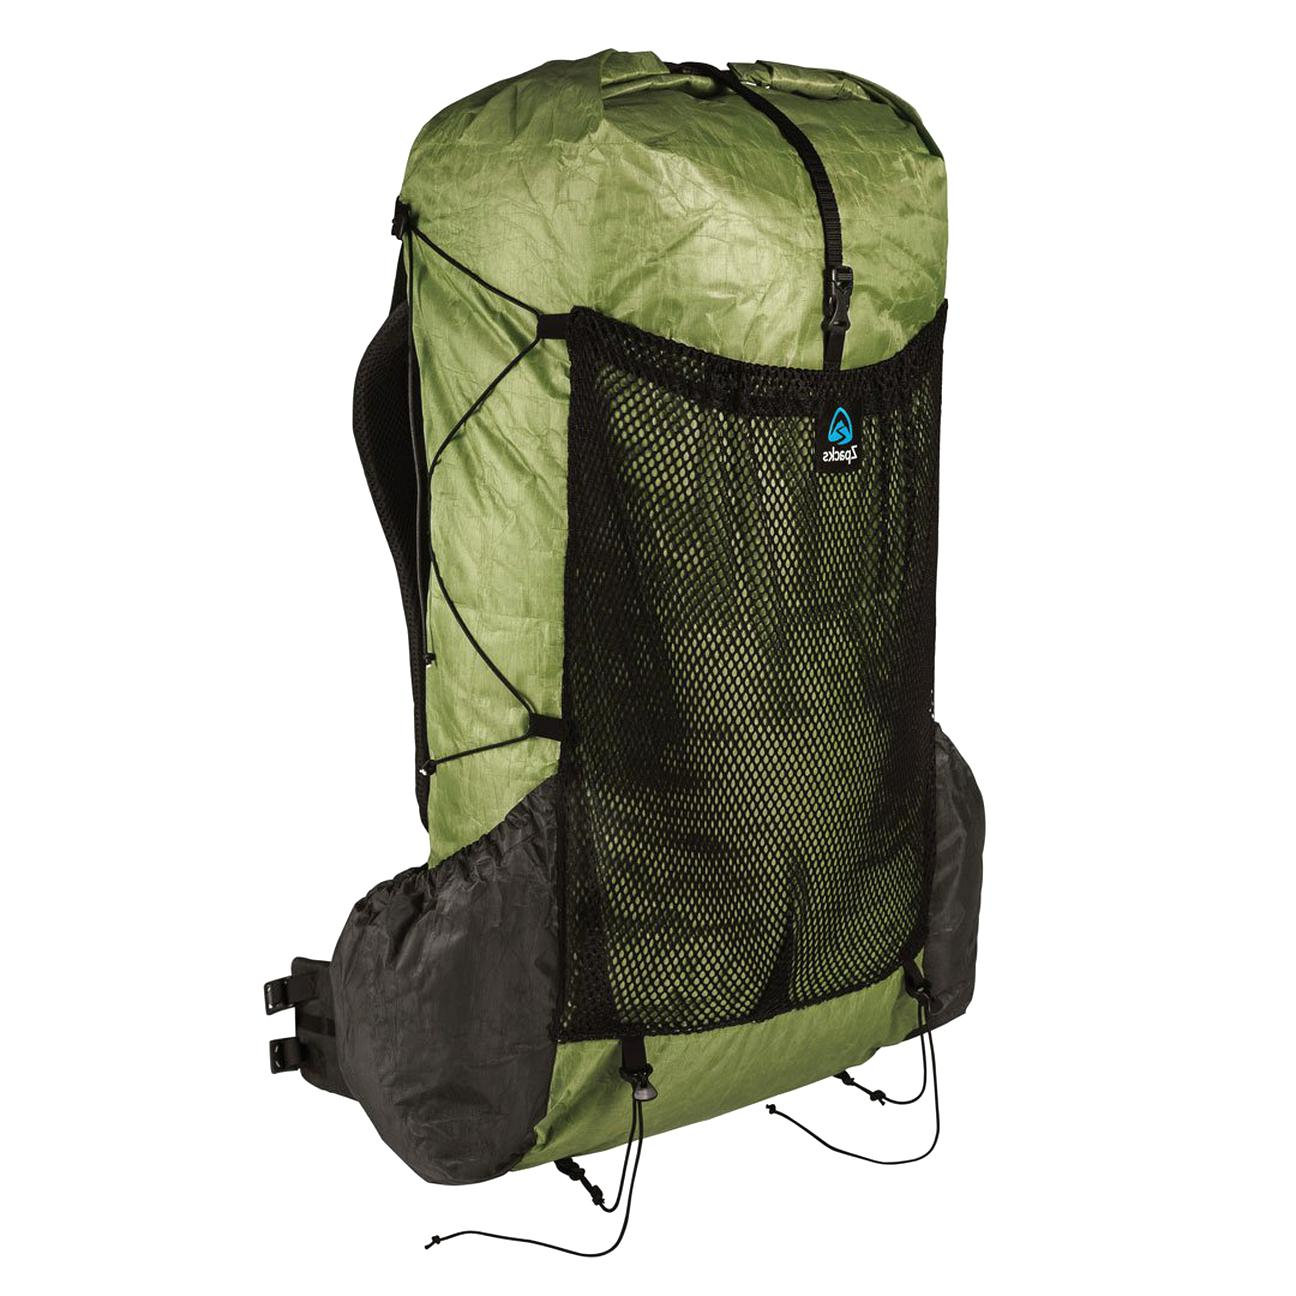 zpacks for sale